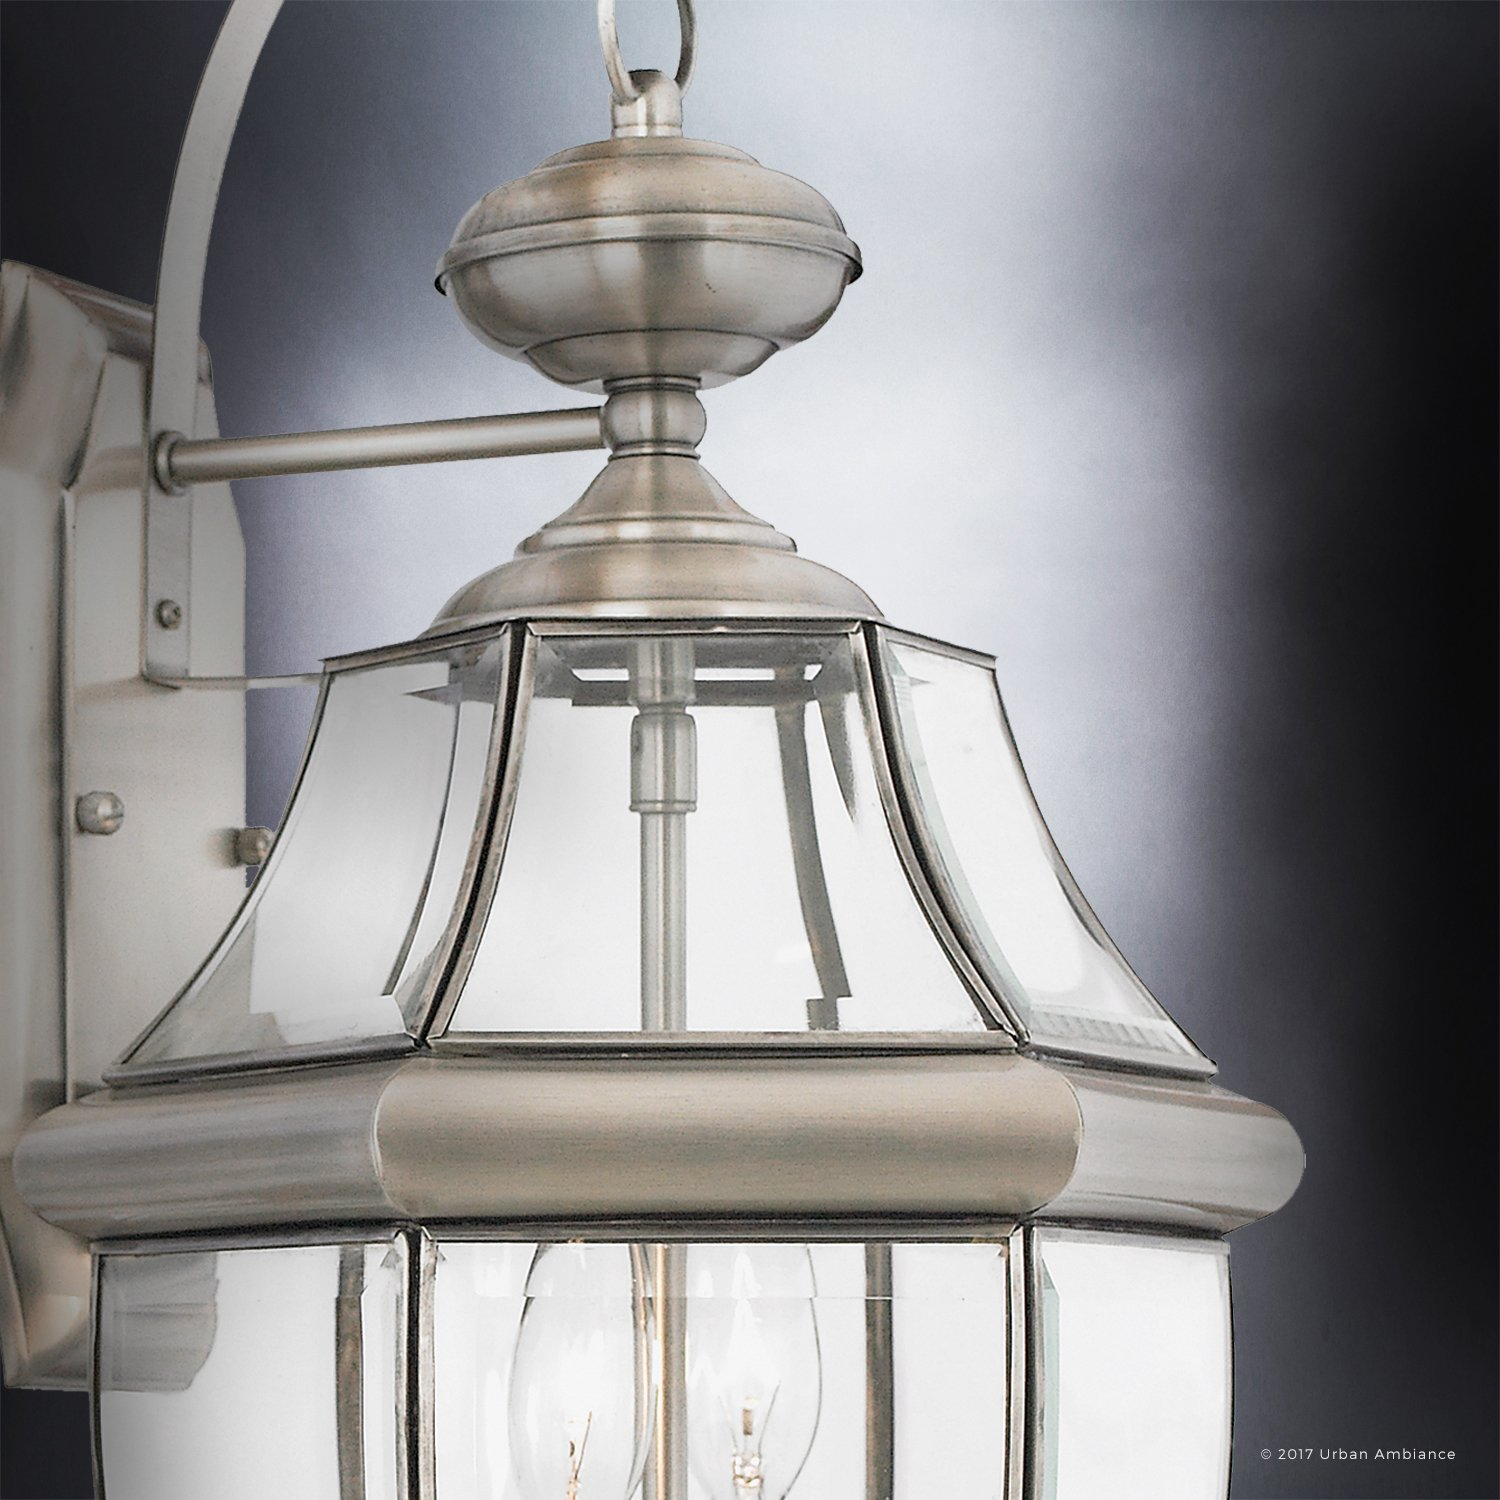 Luxury Colonial Outdoor Wall Light, Large Size: 20''H x 10.5''W, with Tudor Style Elements, Versatile Design, Classy Aged Silver Finish and Beveled Glass, UQL1145 by Urban Ambiance by Urban Ambiance (Image #4)